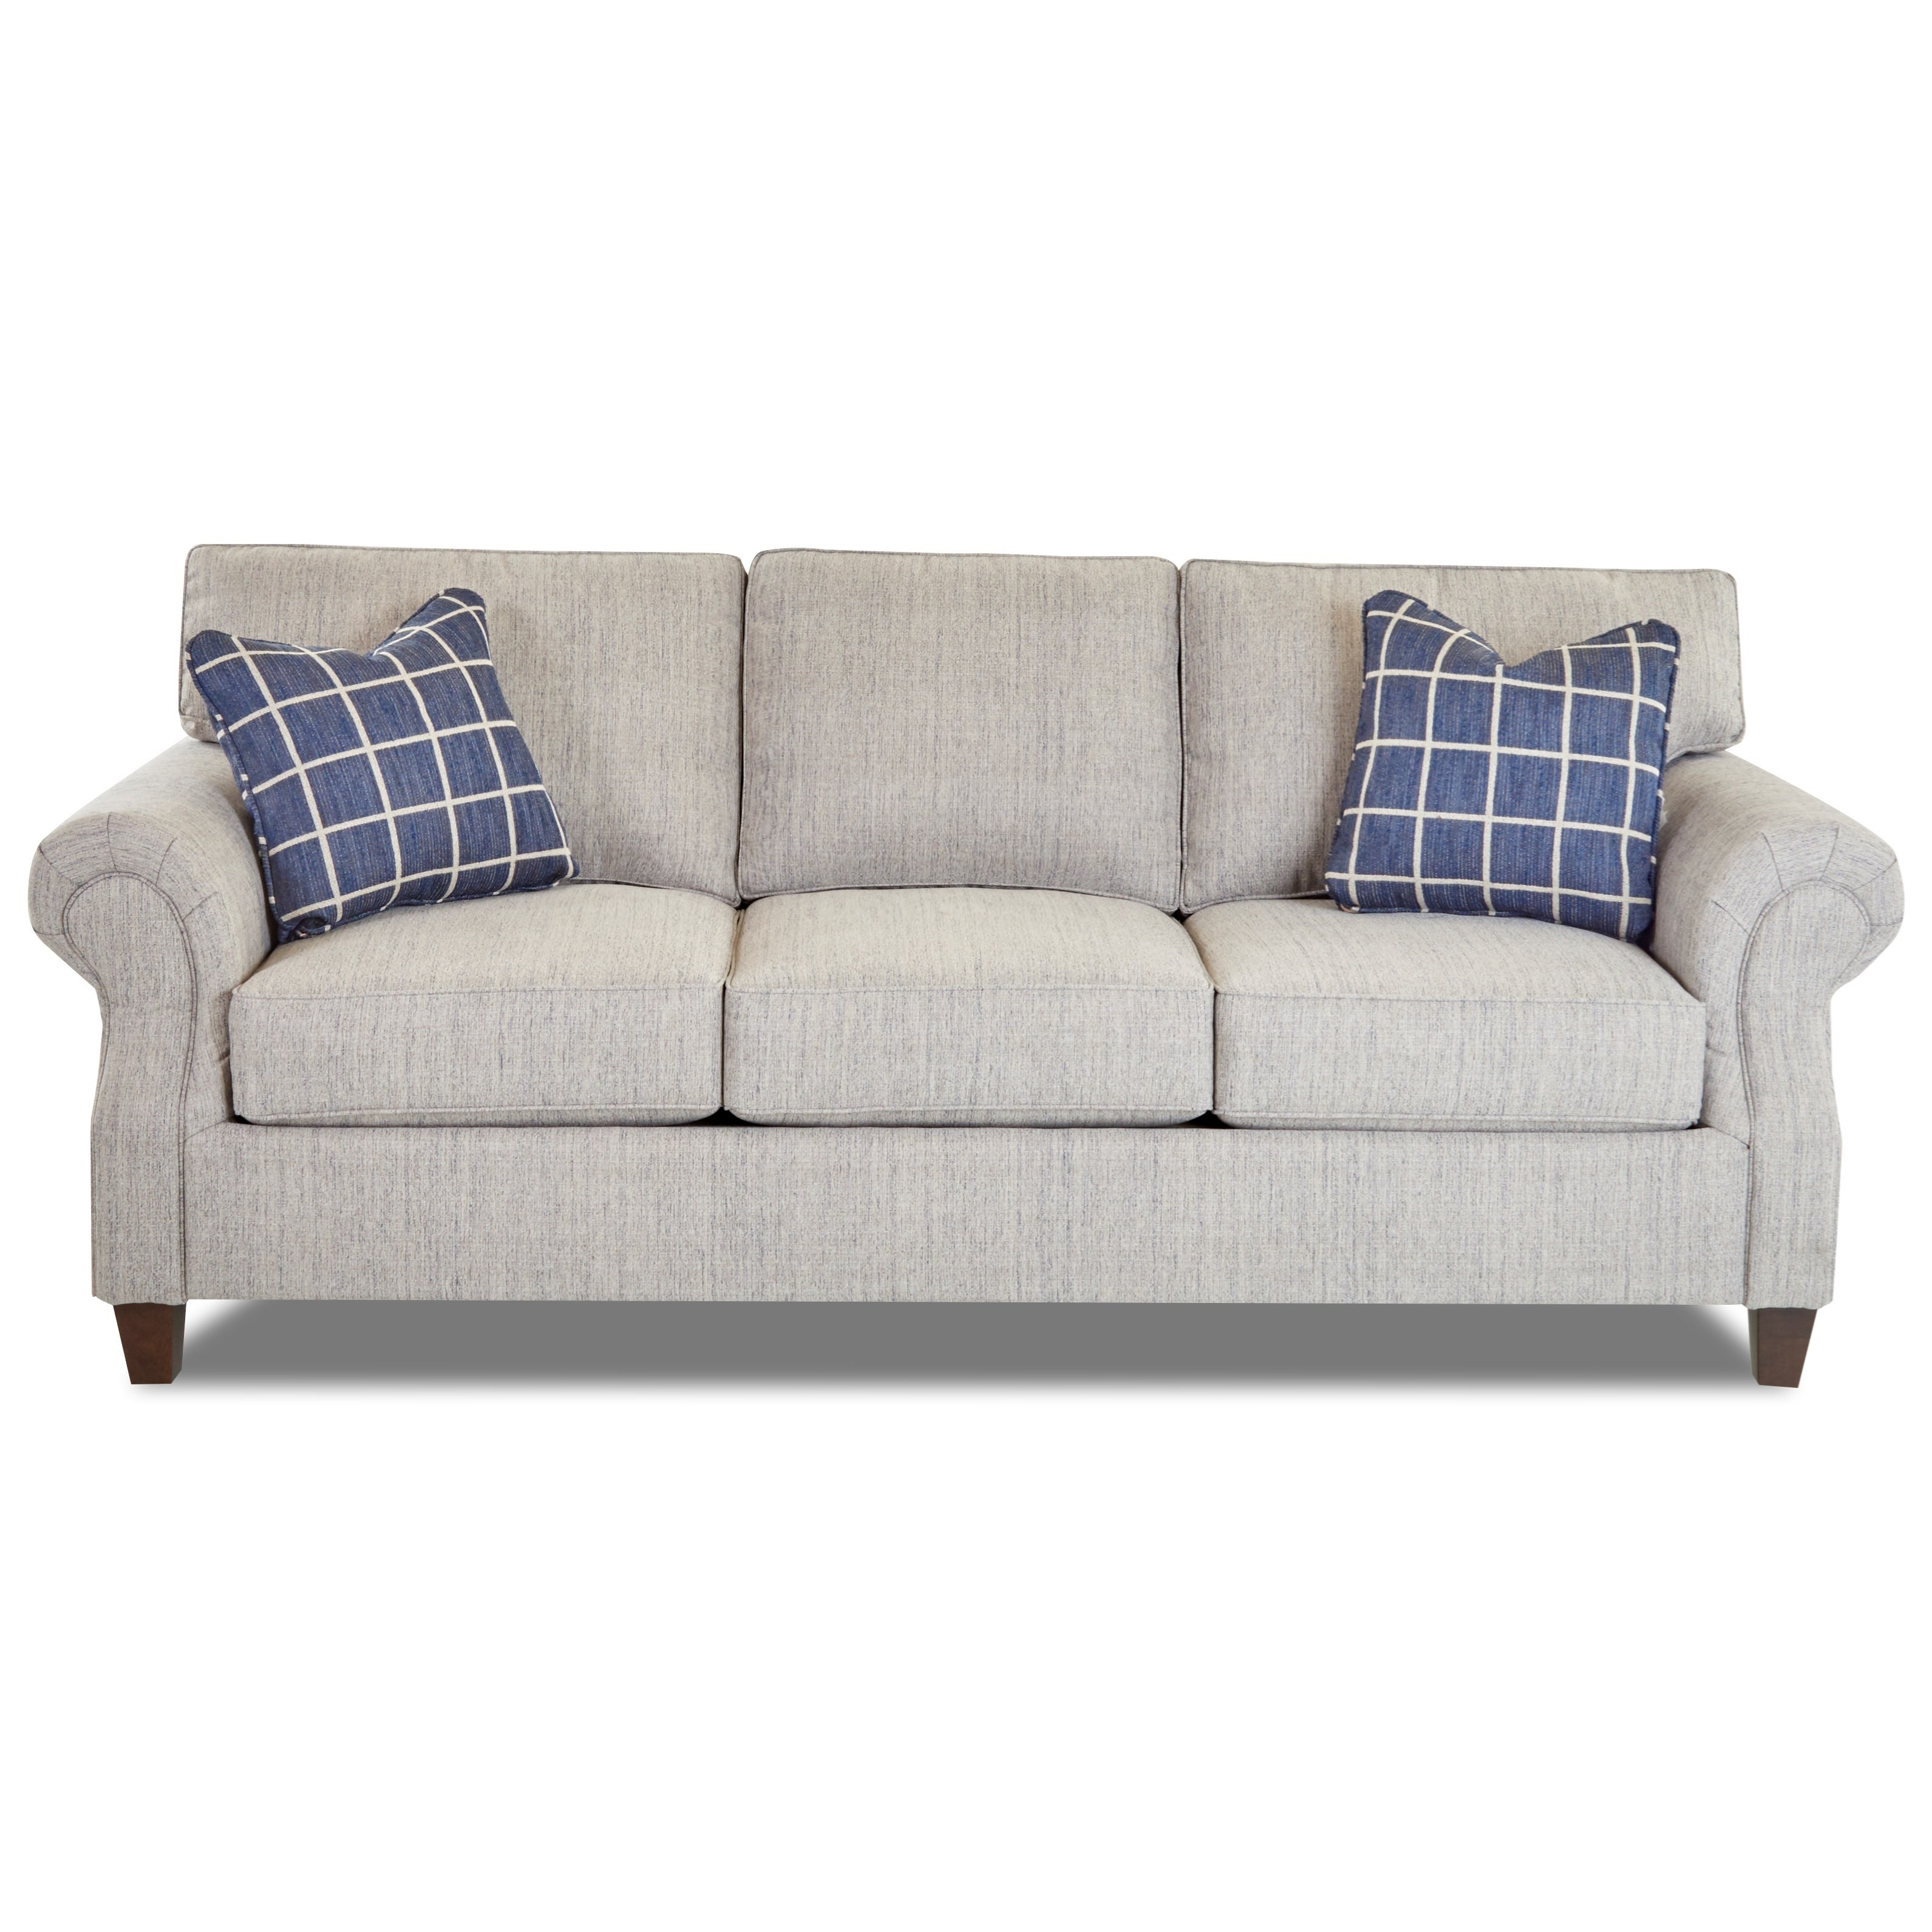 Klaussner Serena Casual Style Sofa Wayside Furniture Sofas